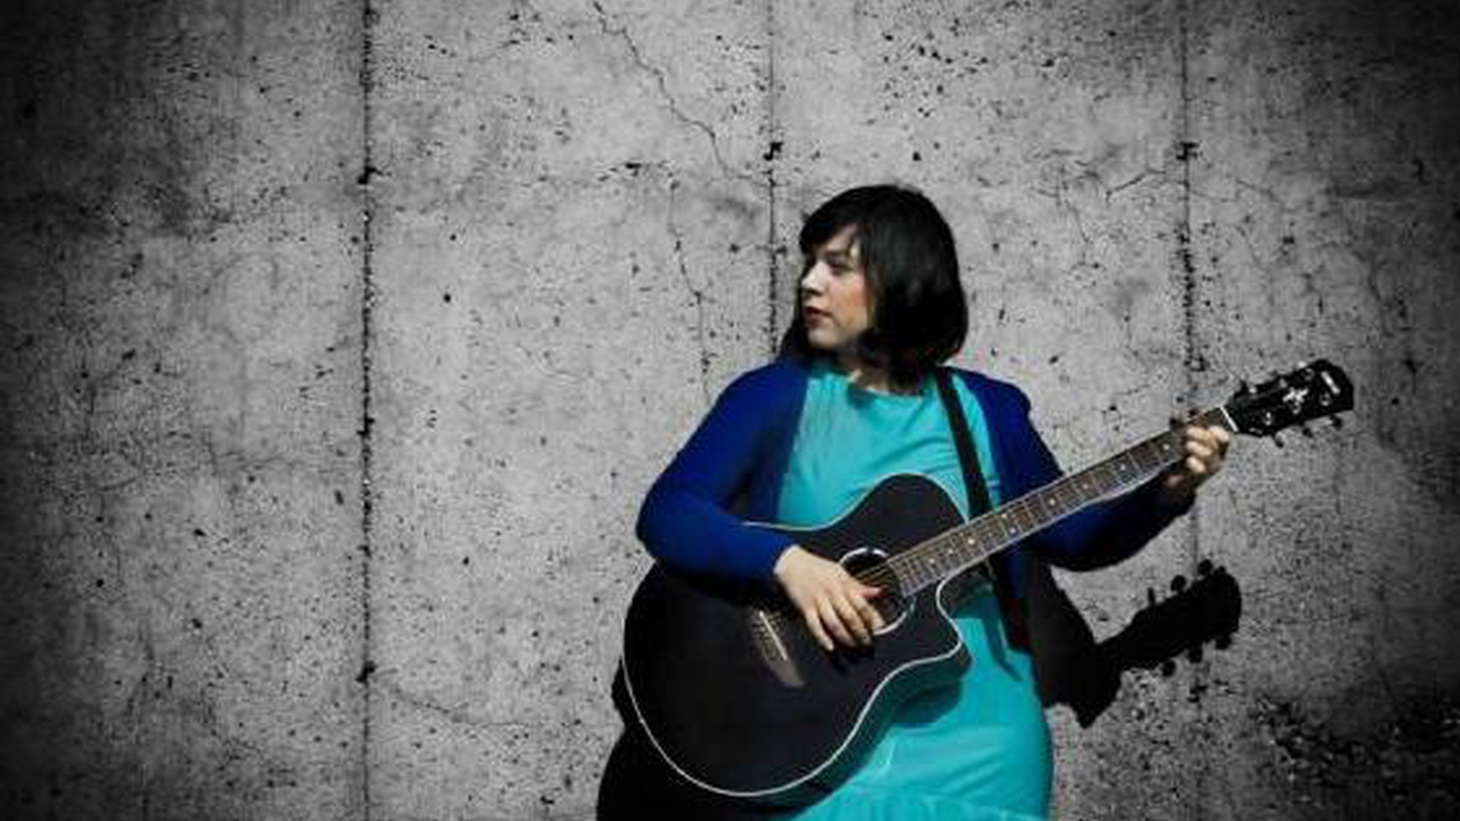 """Carla Morrison is an artist to watch from Tecate, Mexico. She's a one-woman band who creates songs by employing pedals, loops, keys and her guitar. I can't stop listening to her music and hopefully you'll latch onto Today's Top Tune, """"Yo Sigo AquÍ,"""" from Mientras Tú Dormías."""